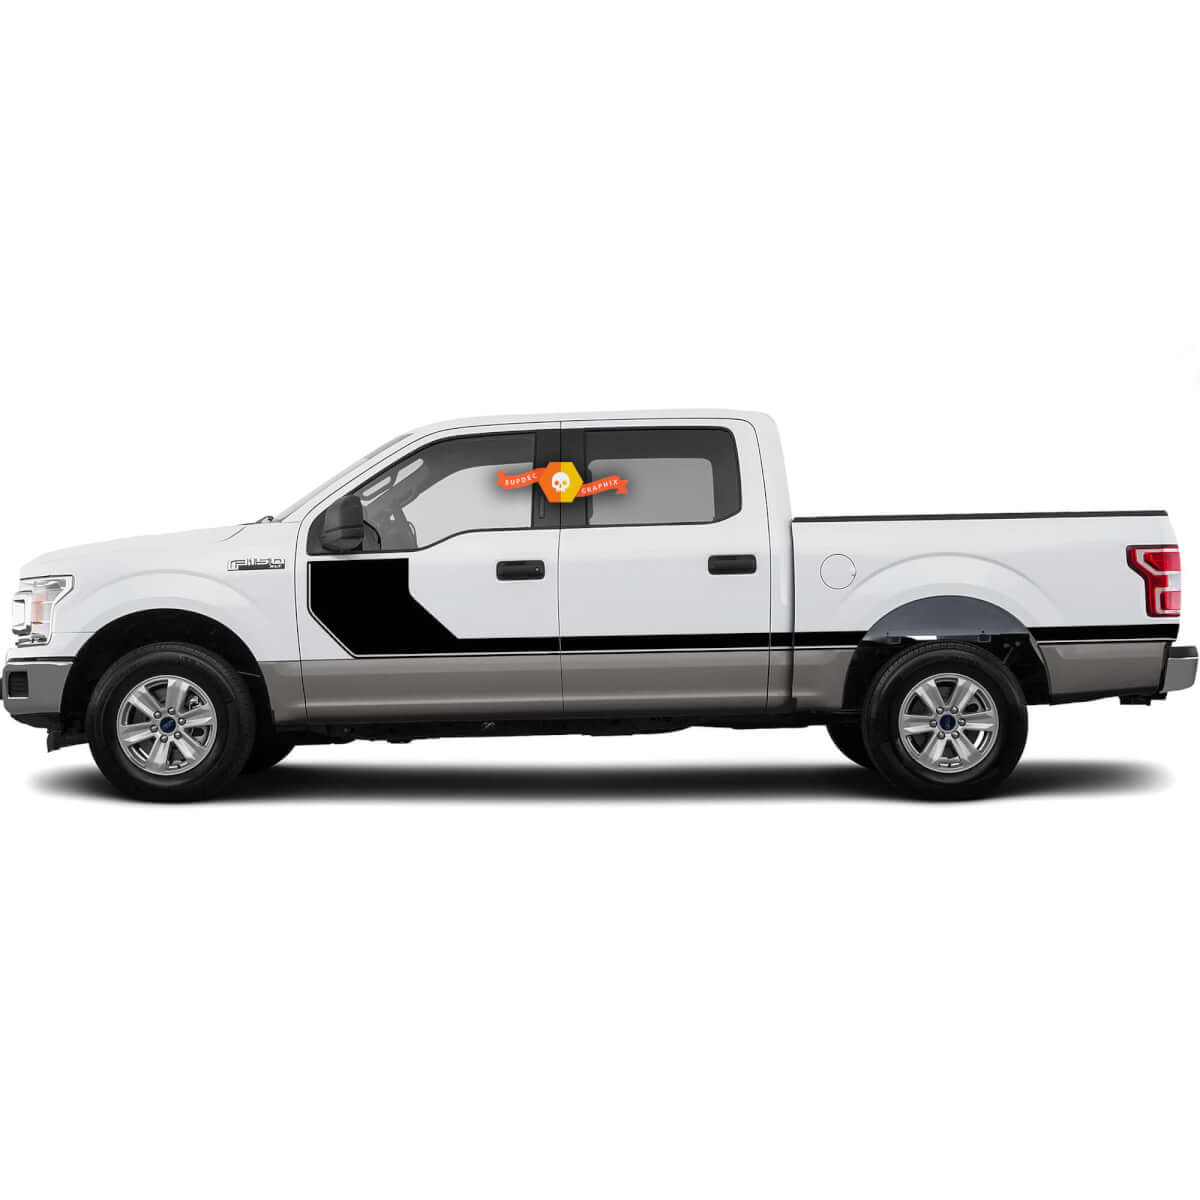 2015-2020 SIDELINE Hockey Side Vinyl Graphics Kit Decals Stripes for Ford F-150